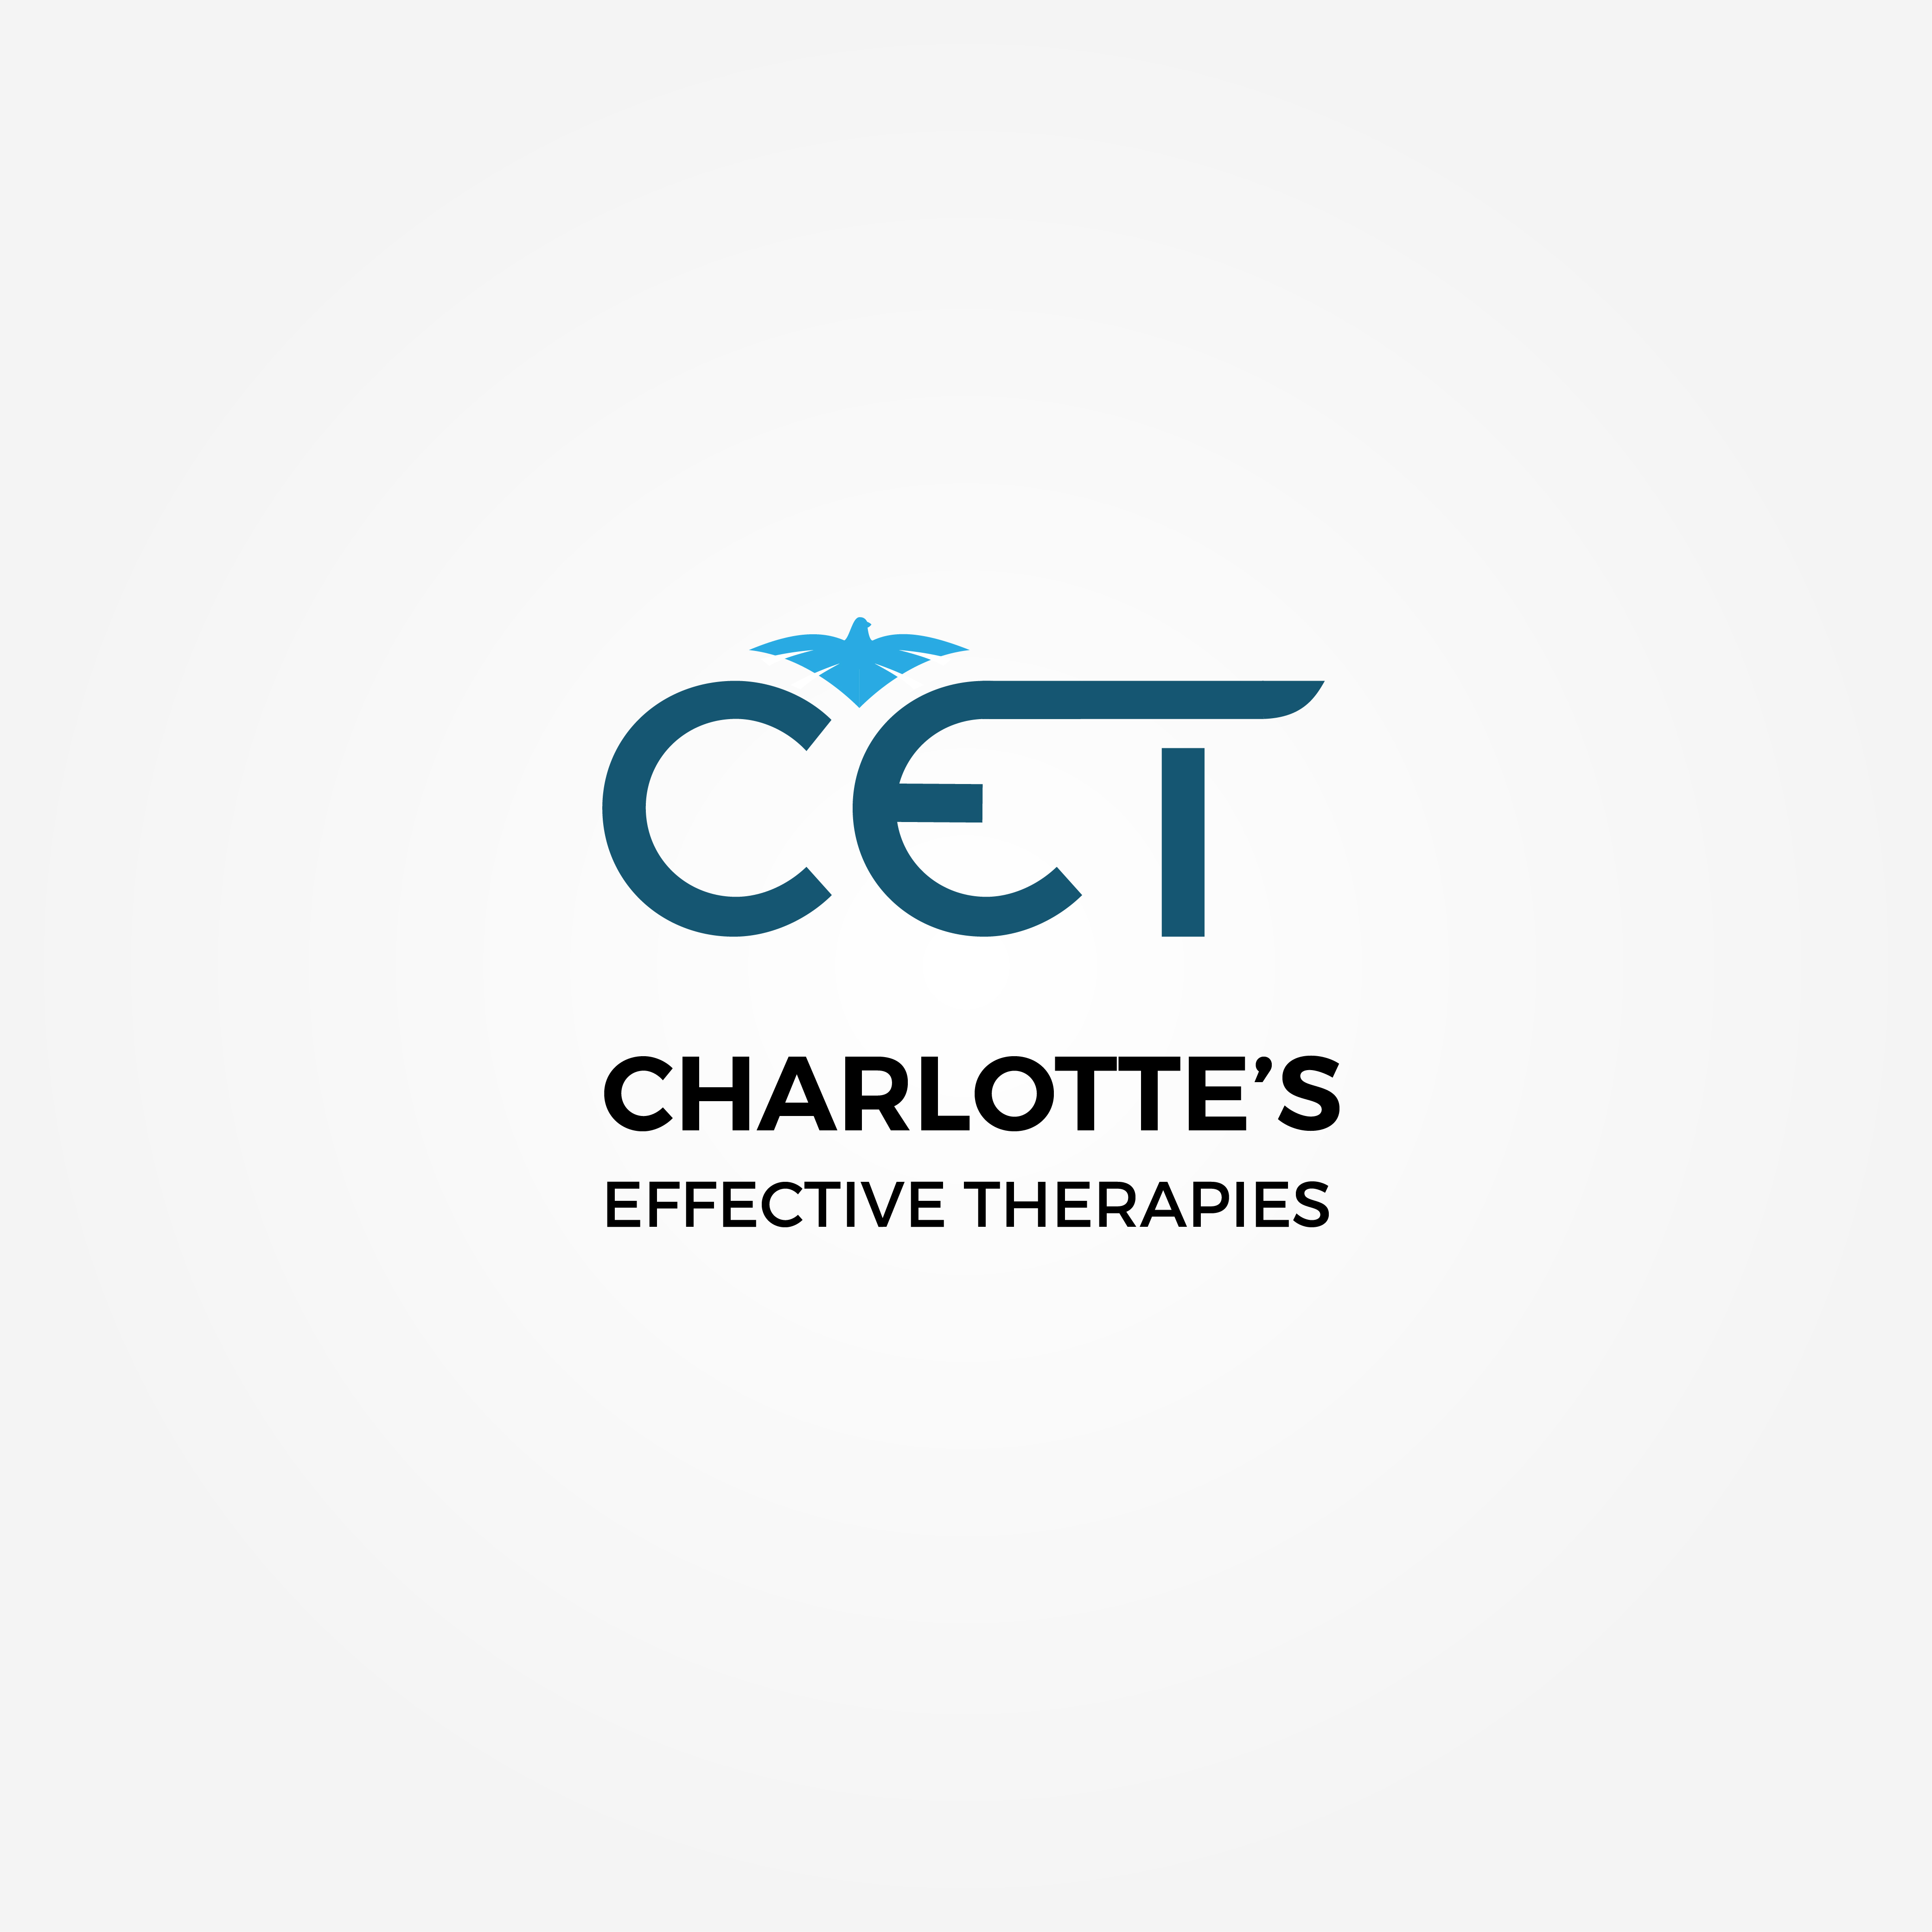 Services of Charlottes Effective Therapies